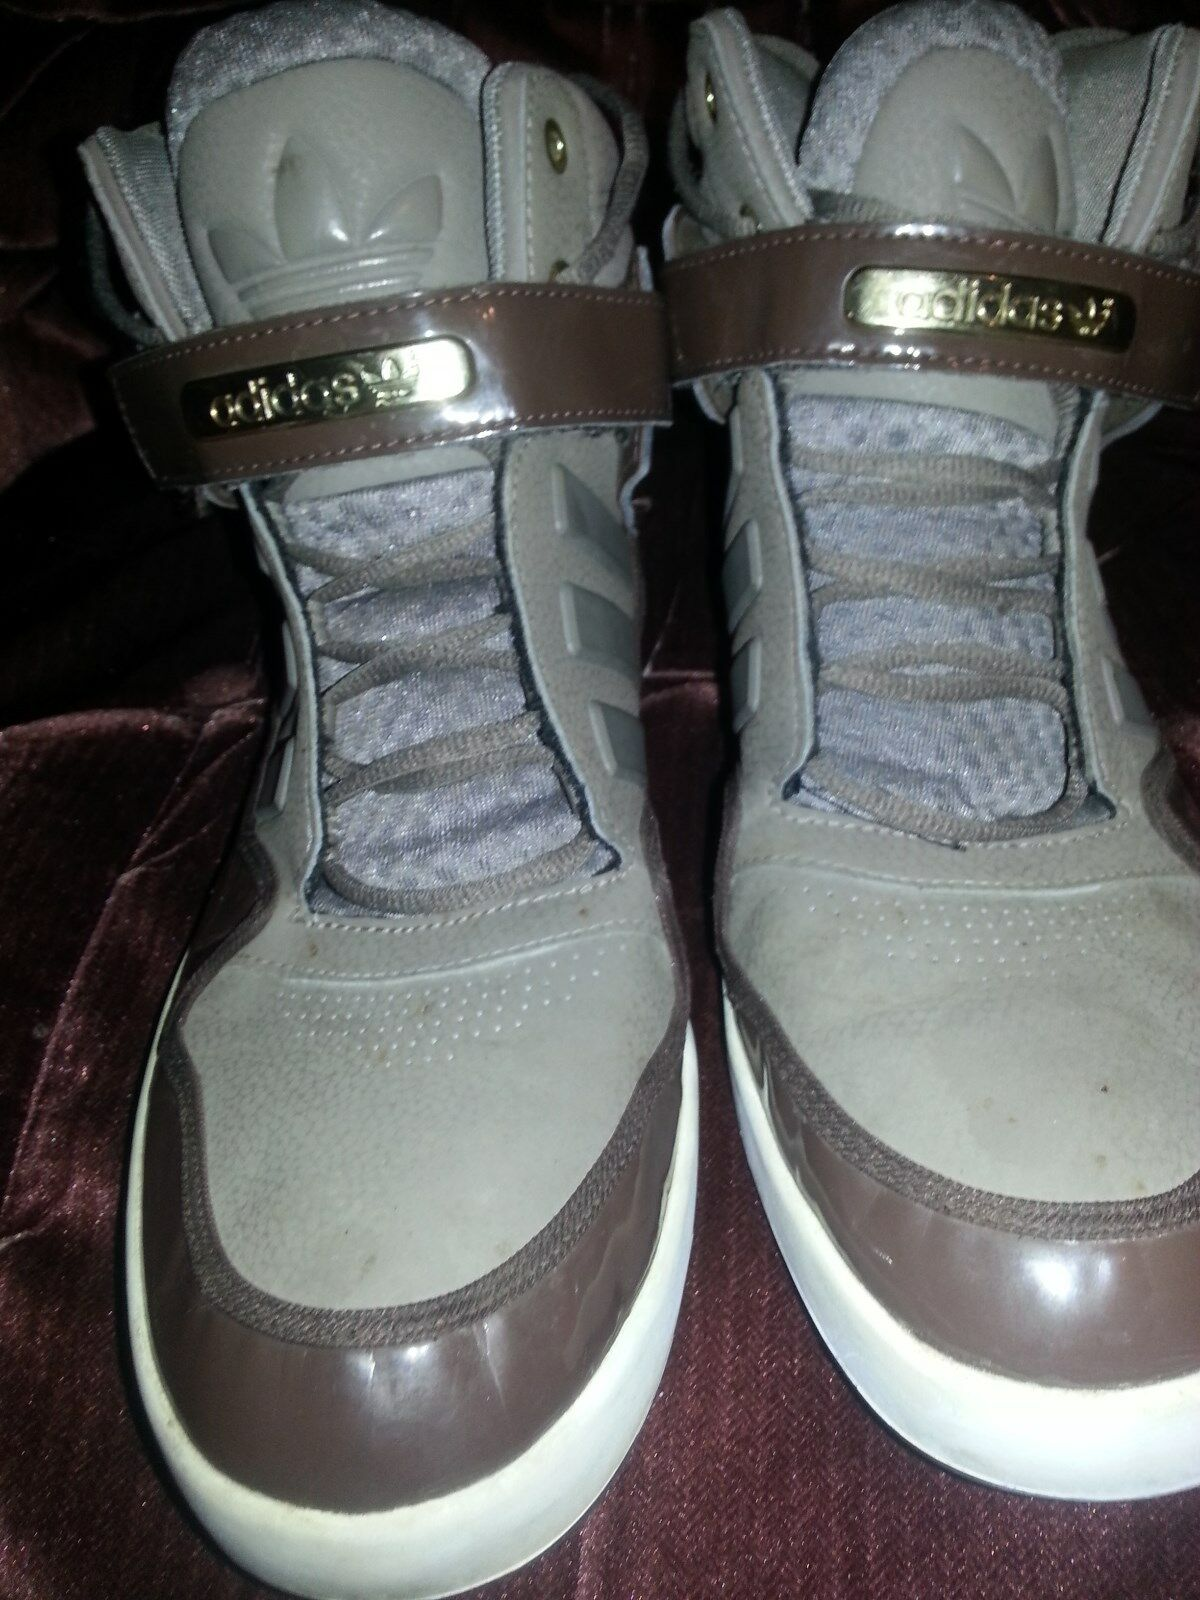 Adidas high top brown & tan size 13  rare vintage  sneakers Men shoes